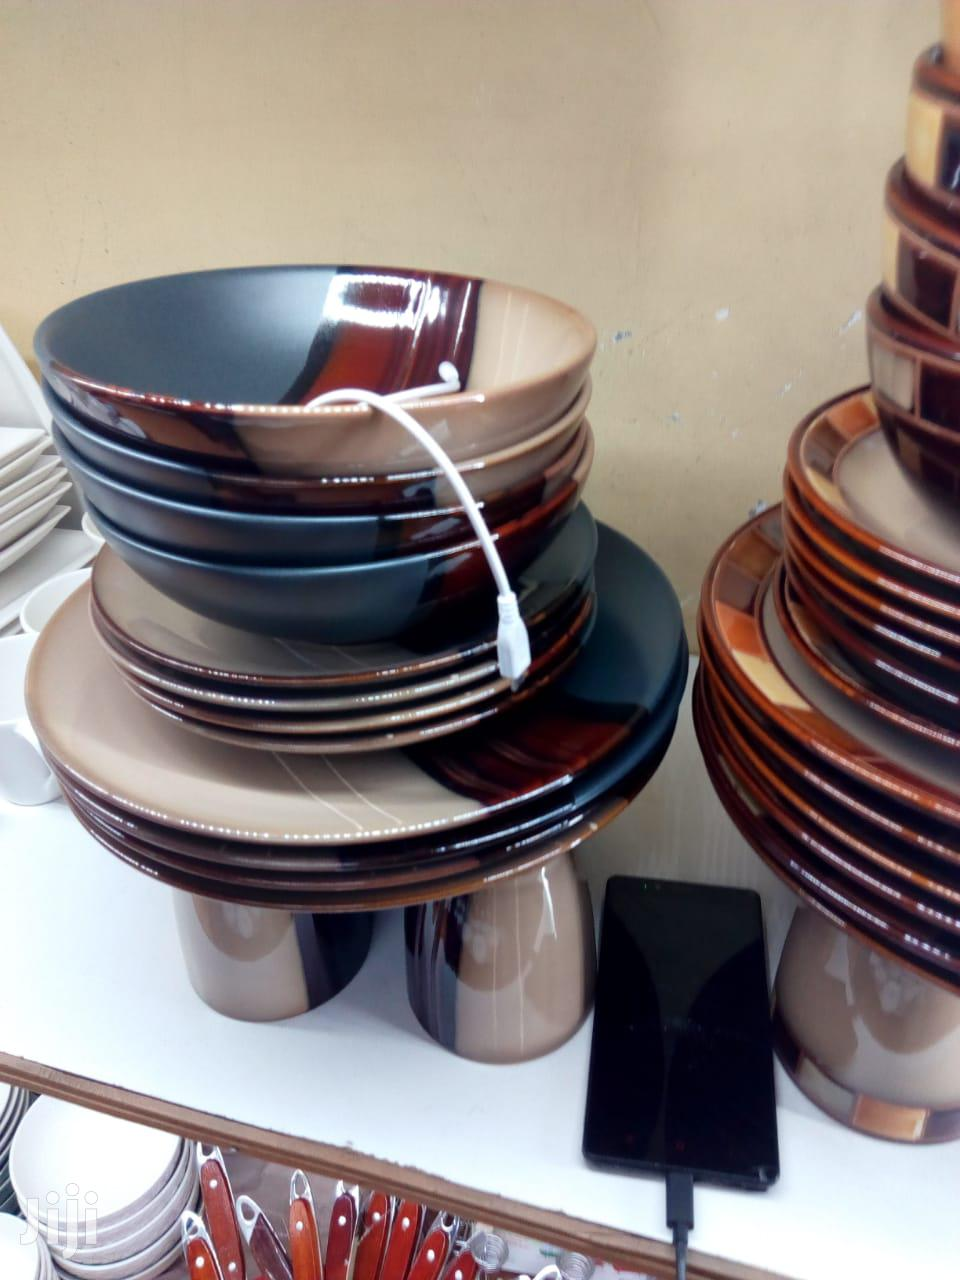 24pc Ceramic Dinner Set/ Dinner Set